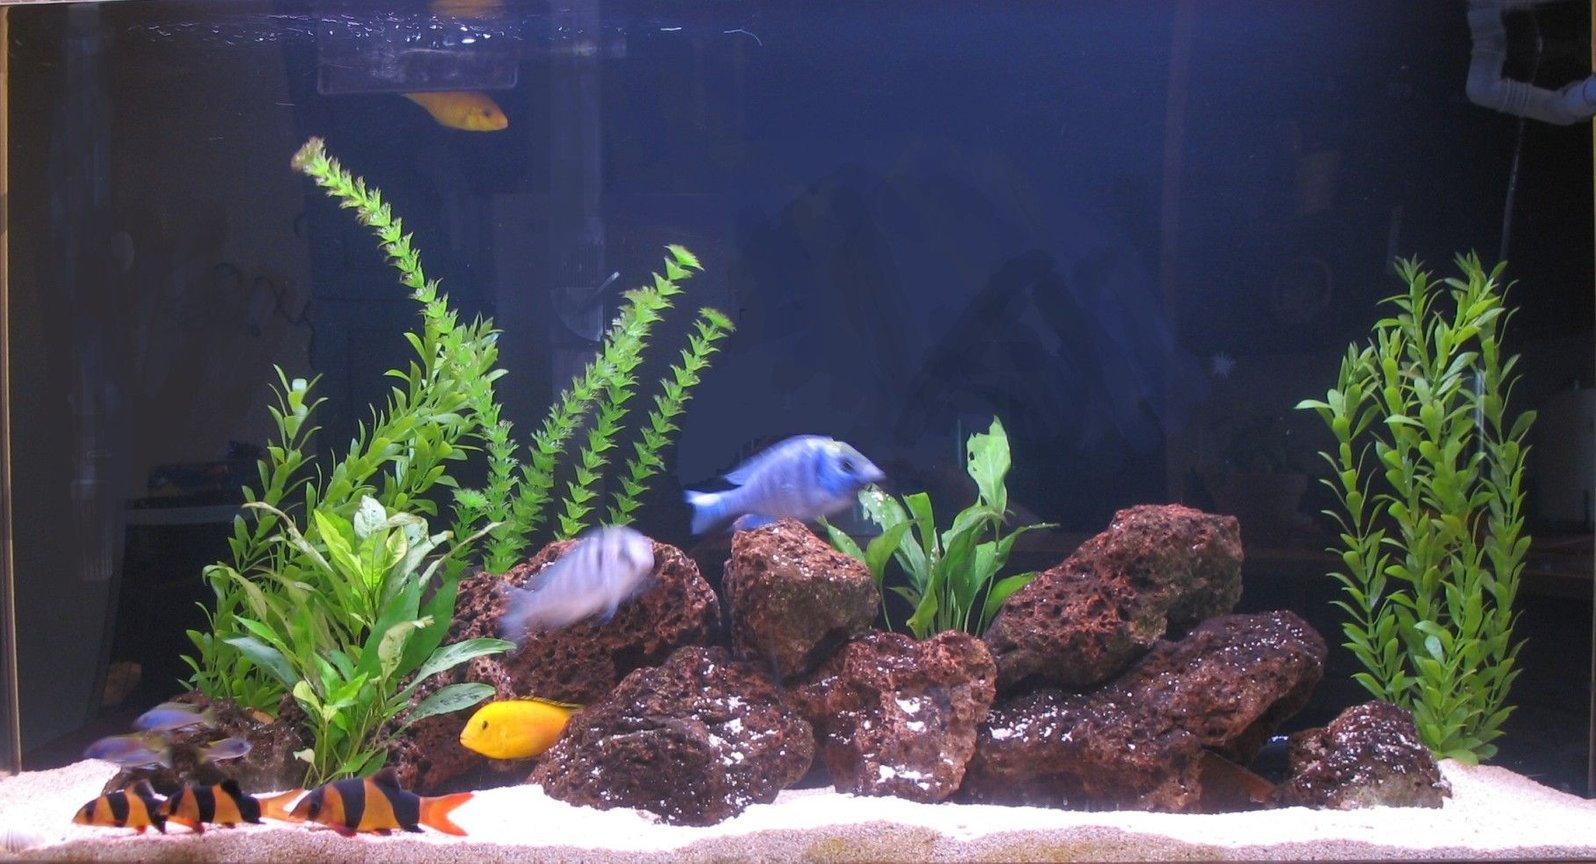 75 gallons freshwater fish tank (mostly fish and non-living decorations) - 75 gal./280 liter freshwater SeaClear acrylic . Aragonite base with lava rock. Mixed real and fake plants. African Lake Malawi Cichlids and clown loaches